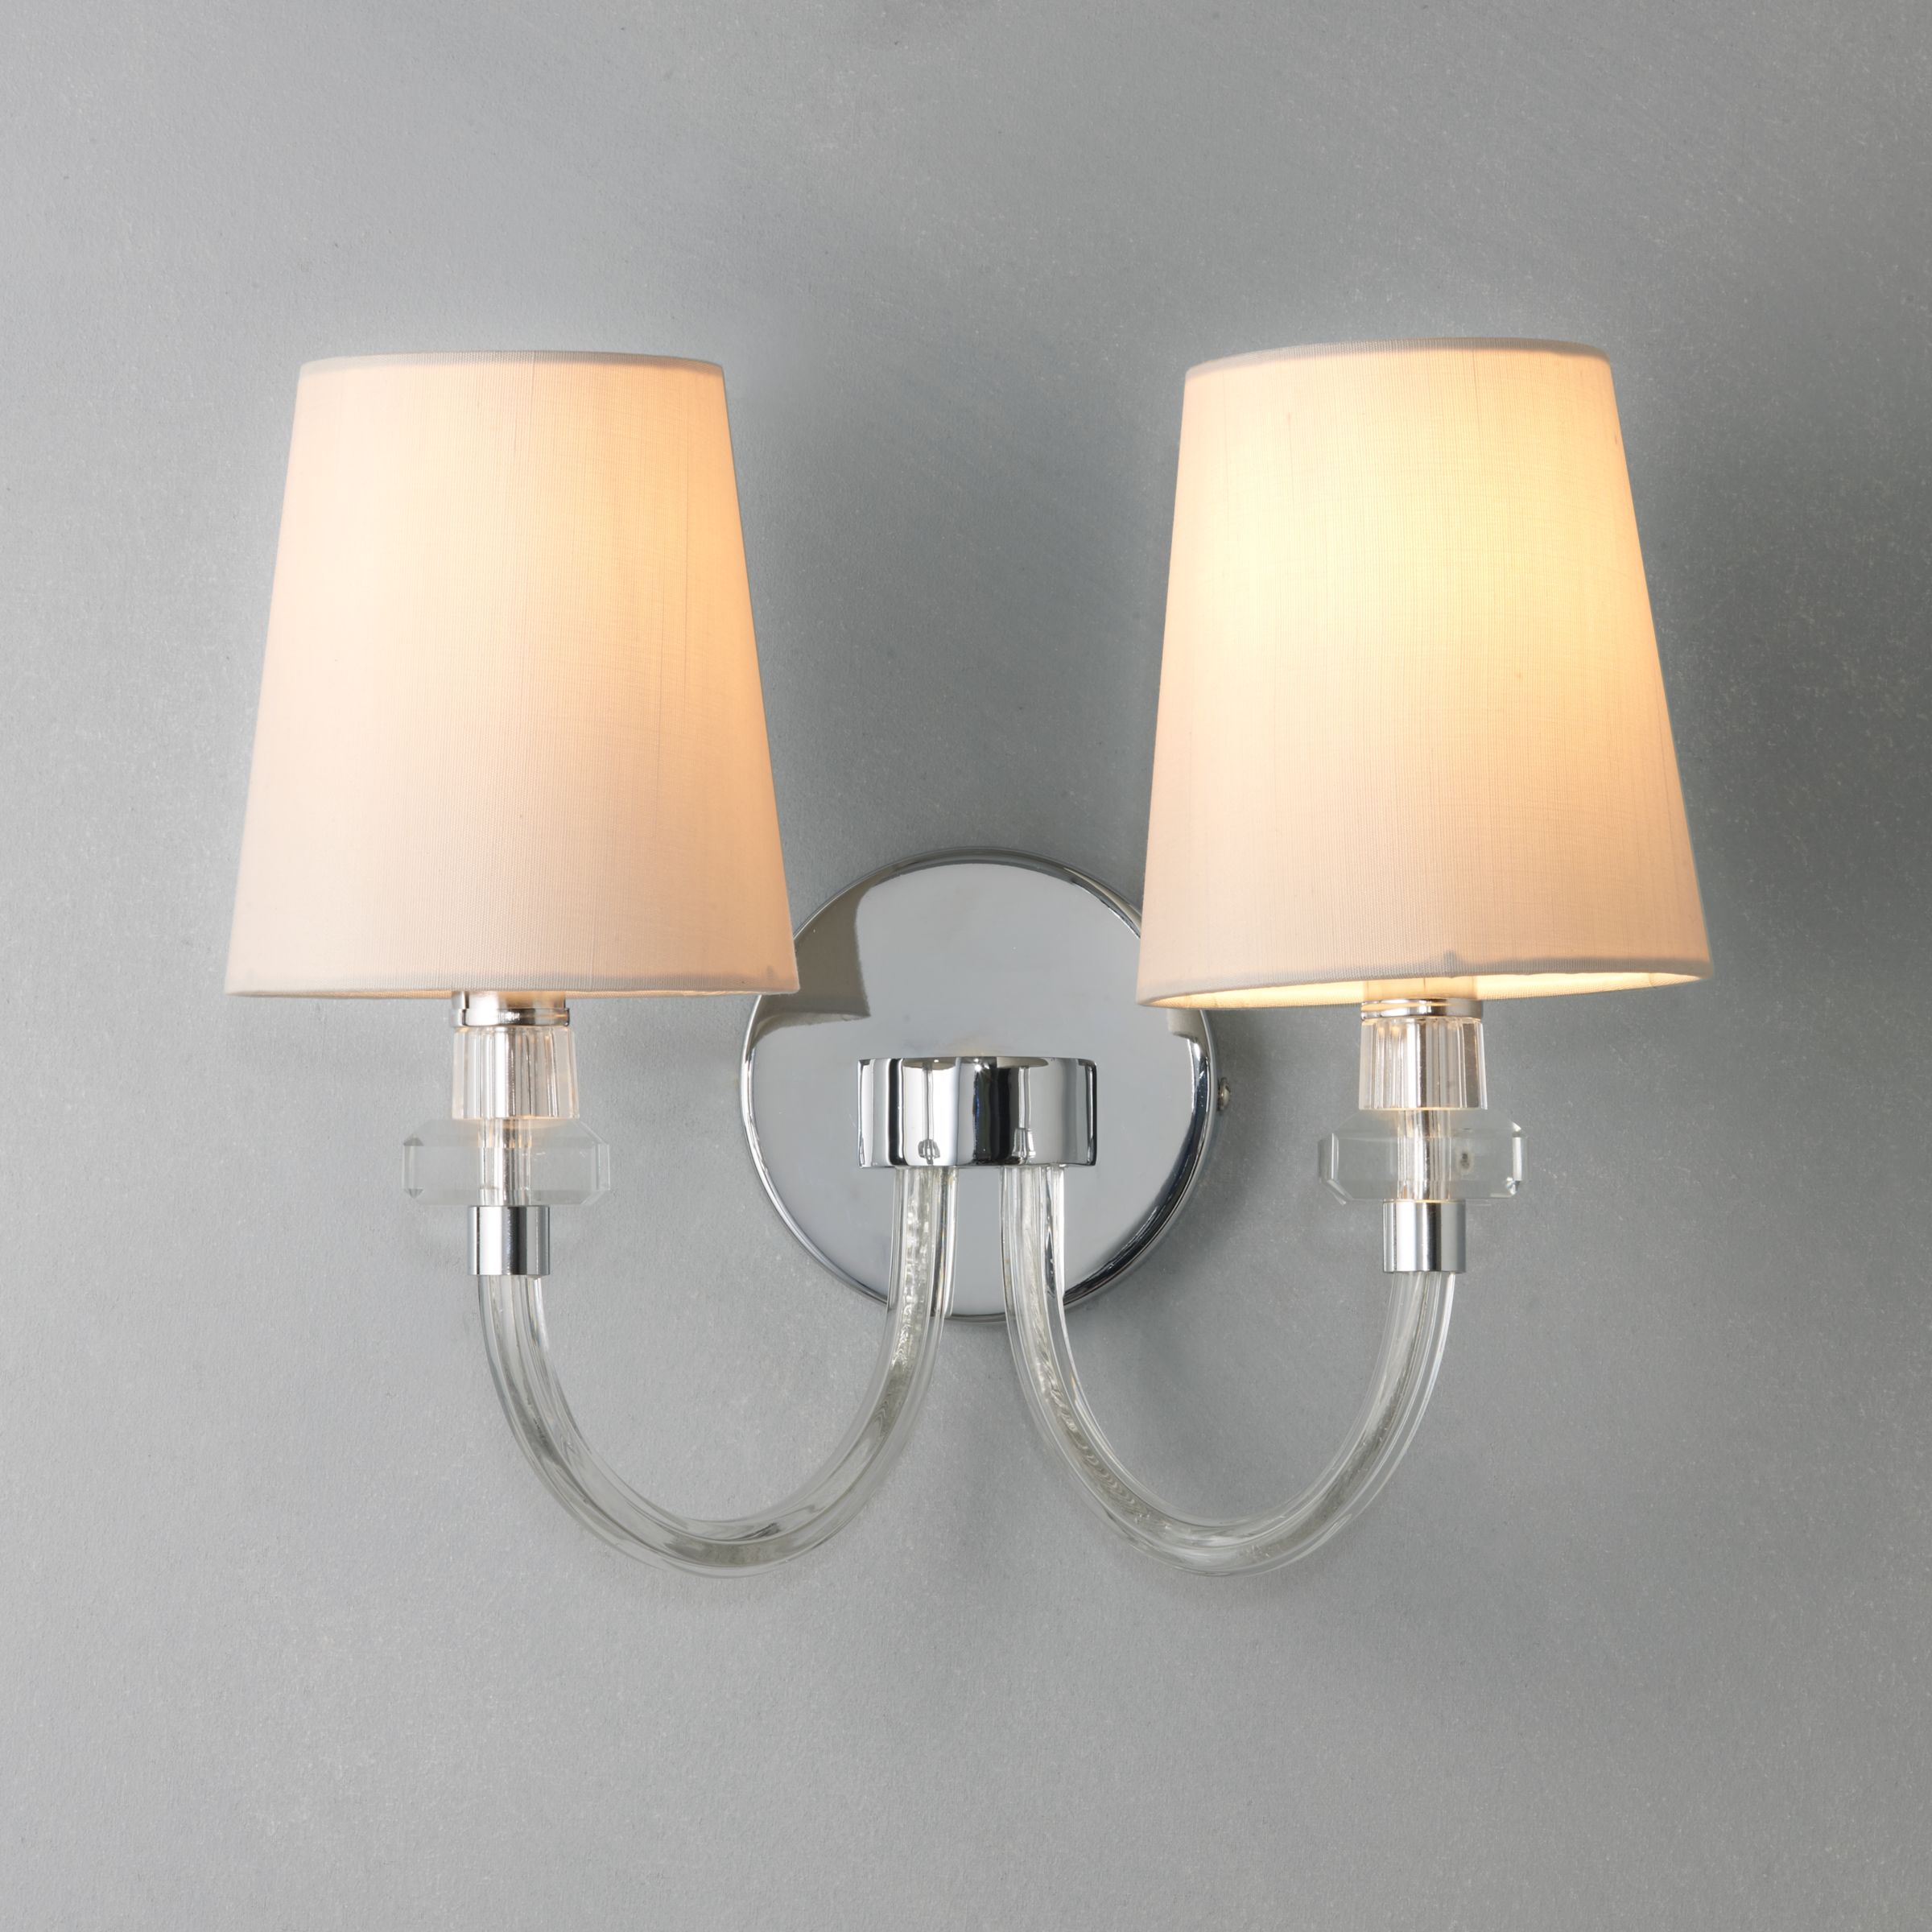 John Lewis Wall Lamp Shades : John Lewis Darcey Wall Light, 2 Light - review, compare prices, buy online